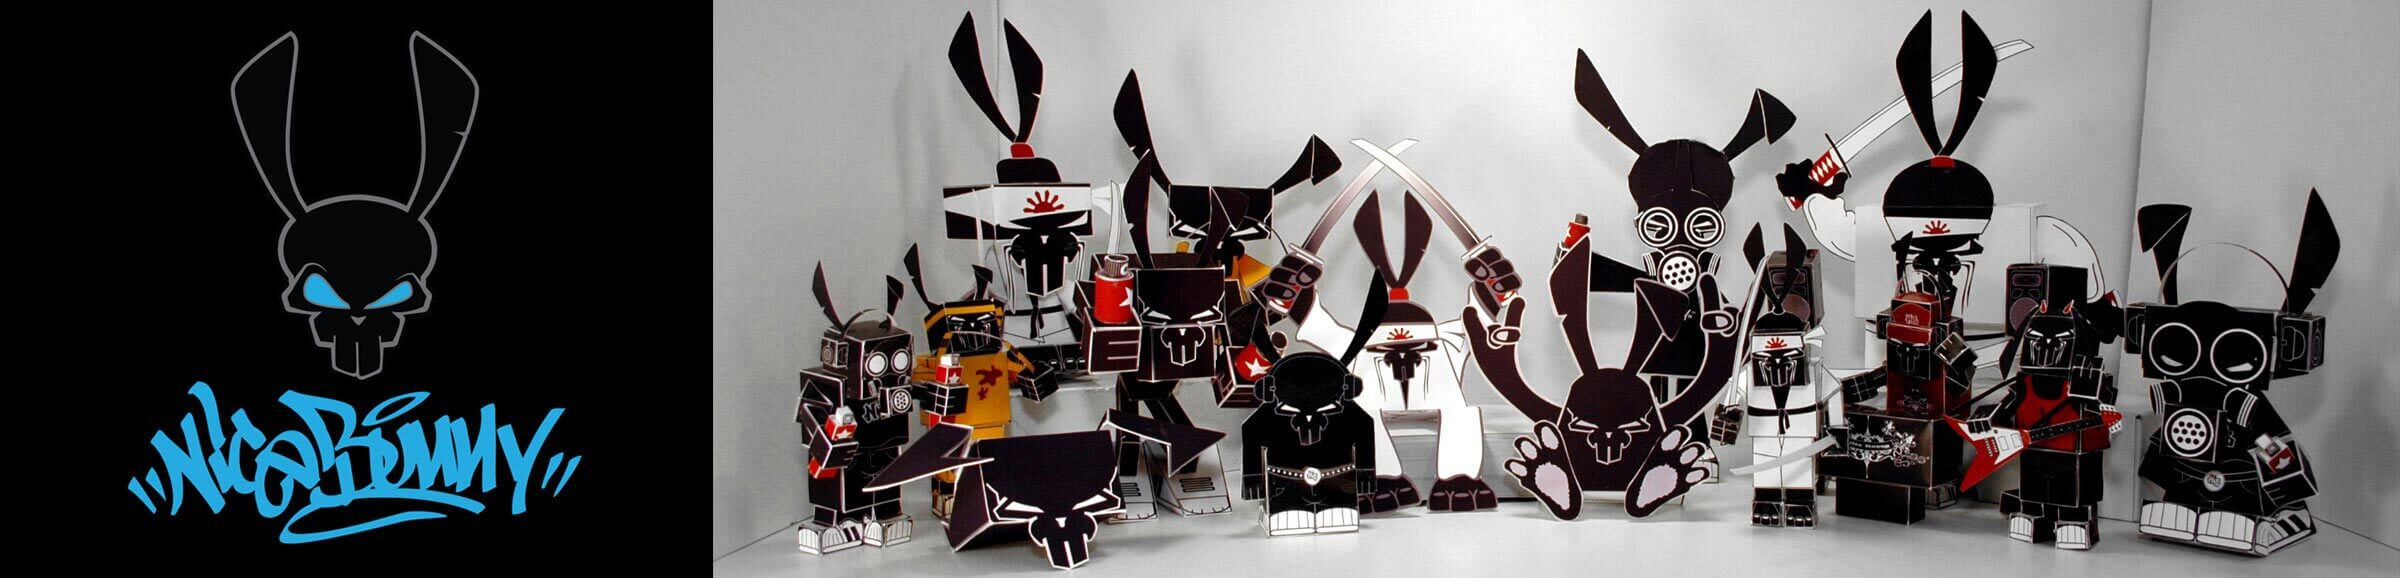 free, paper toys, nicebunny, characters, downloads